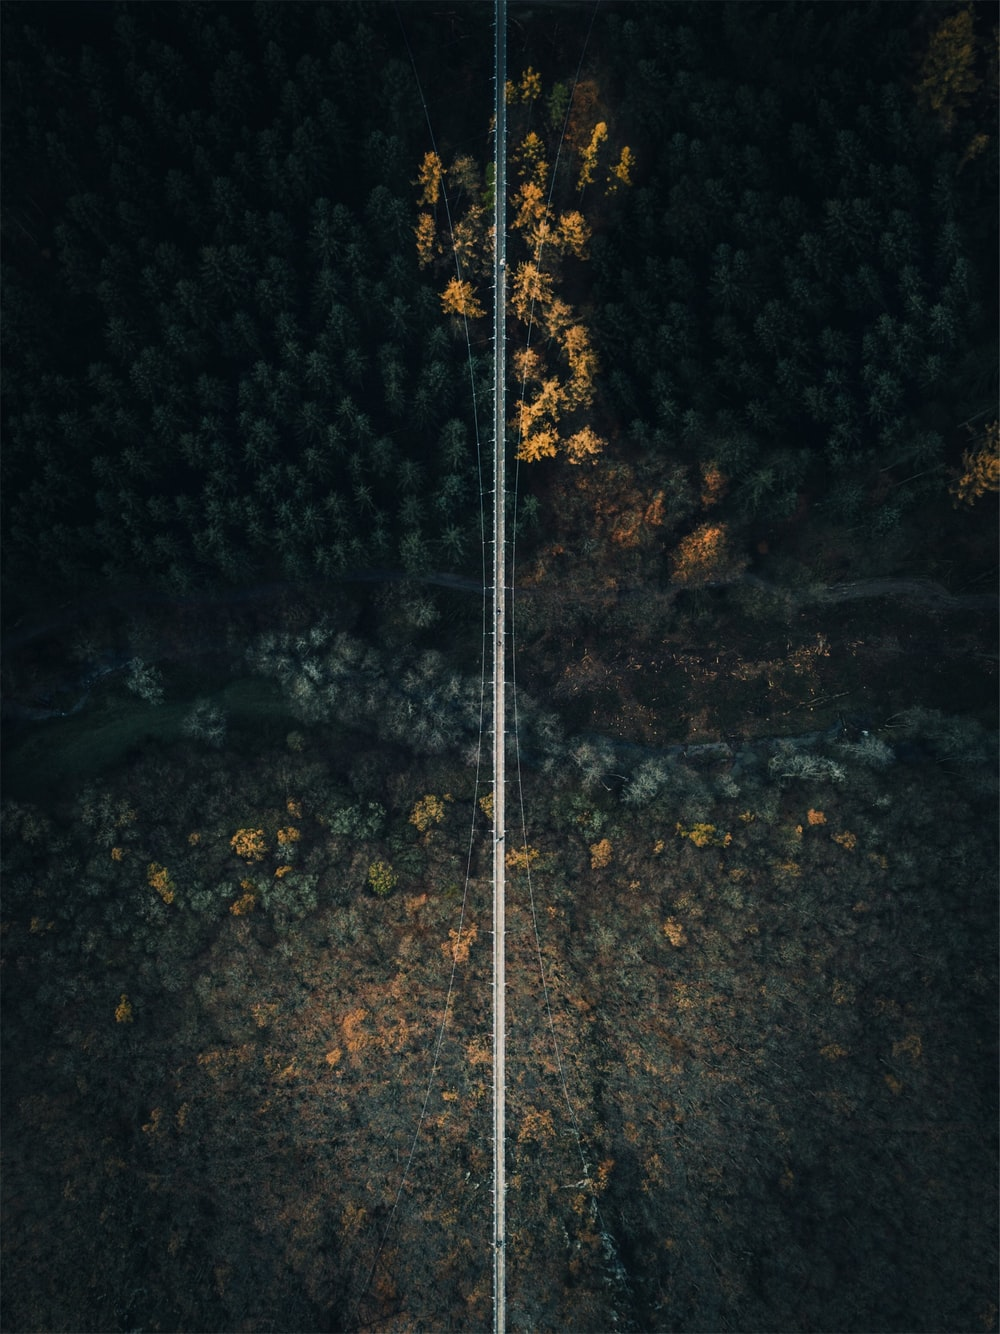 aerial photography of bridge between trees